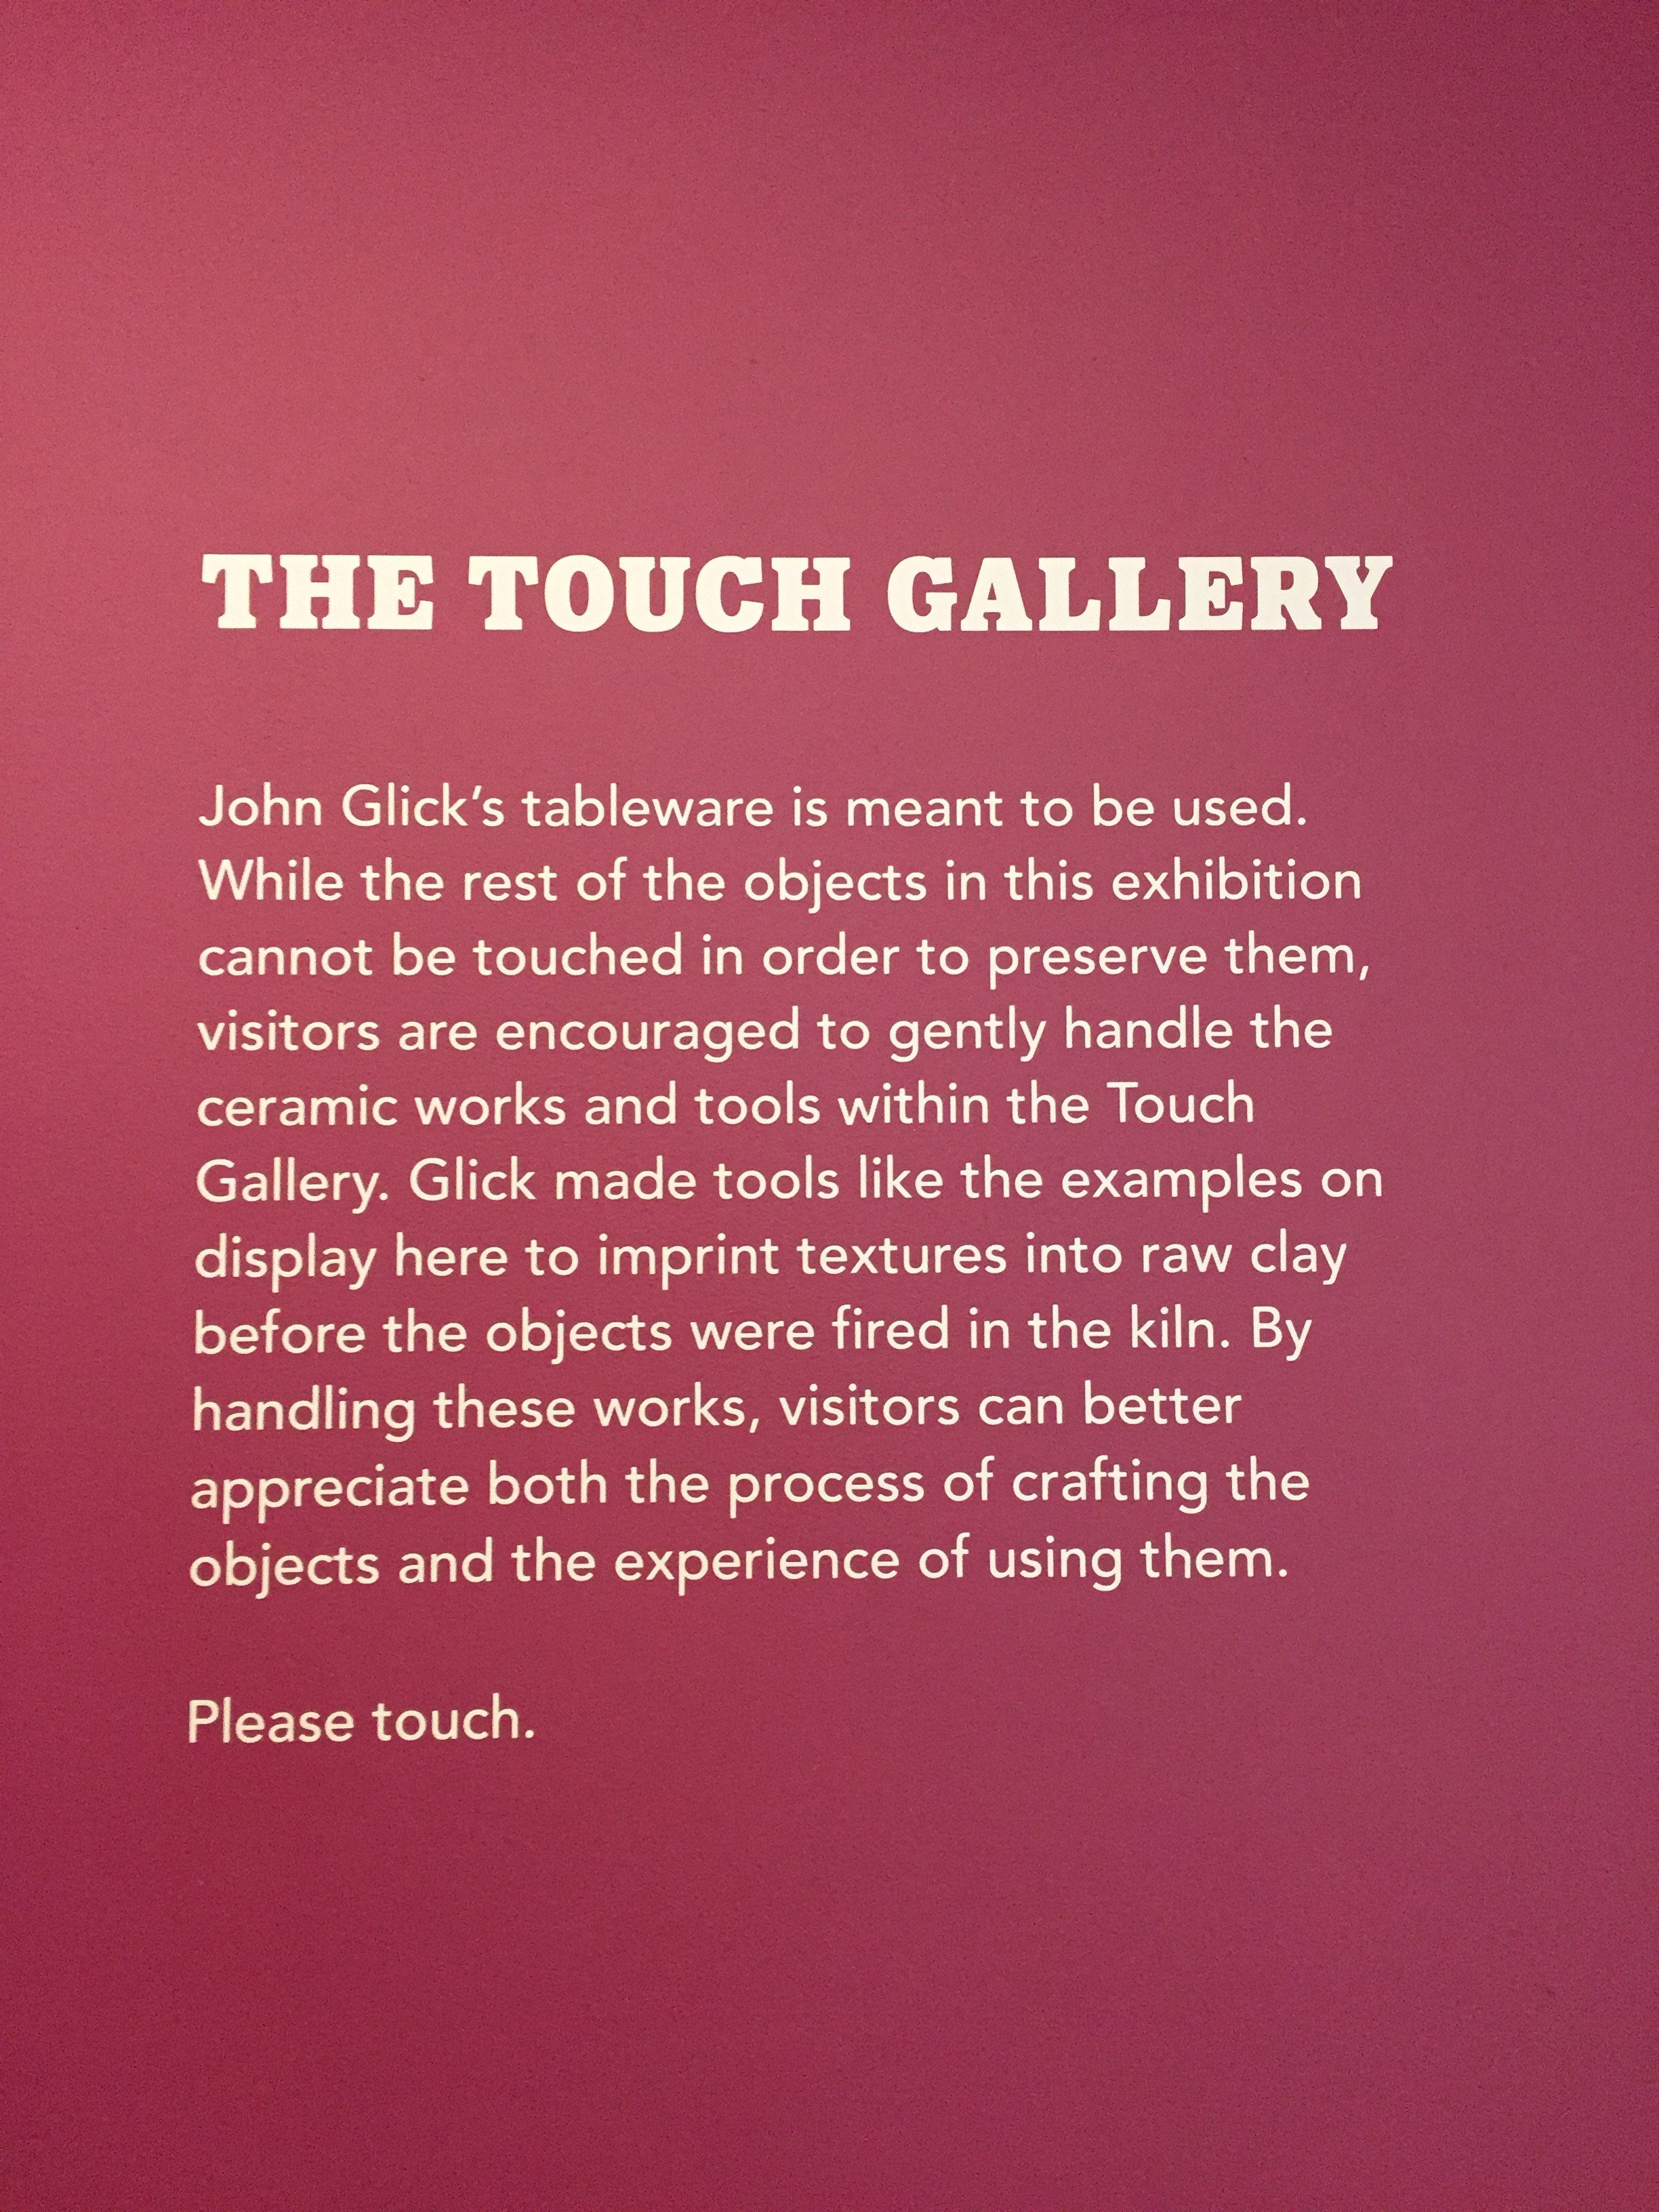 Details on the Touch Gallery, featuring John Glick's clay pieces, at Cranbrook Art Museum -